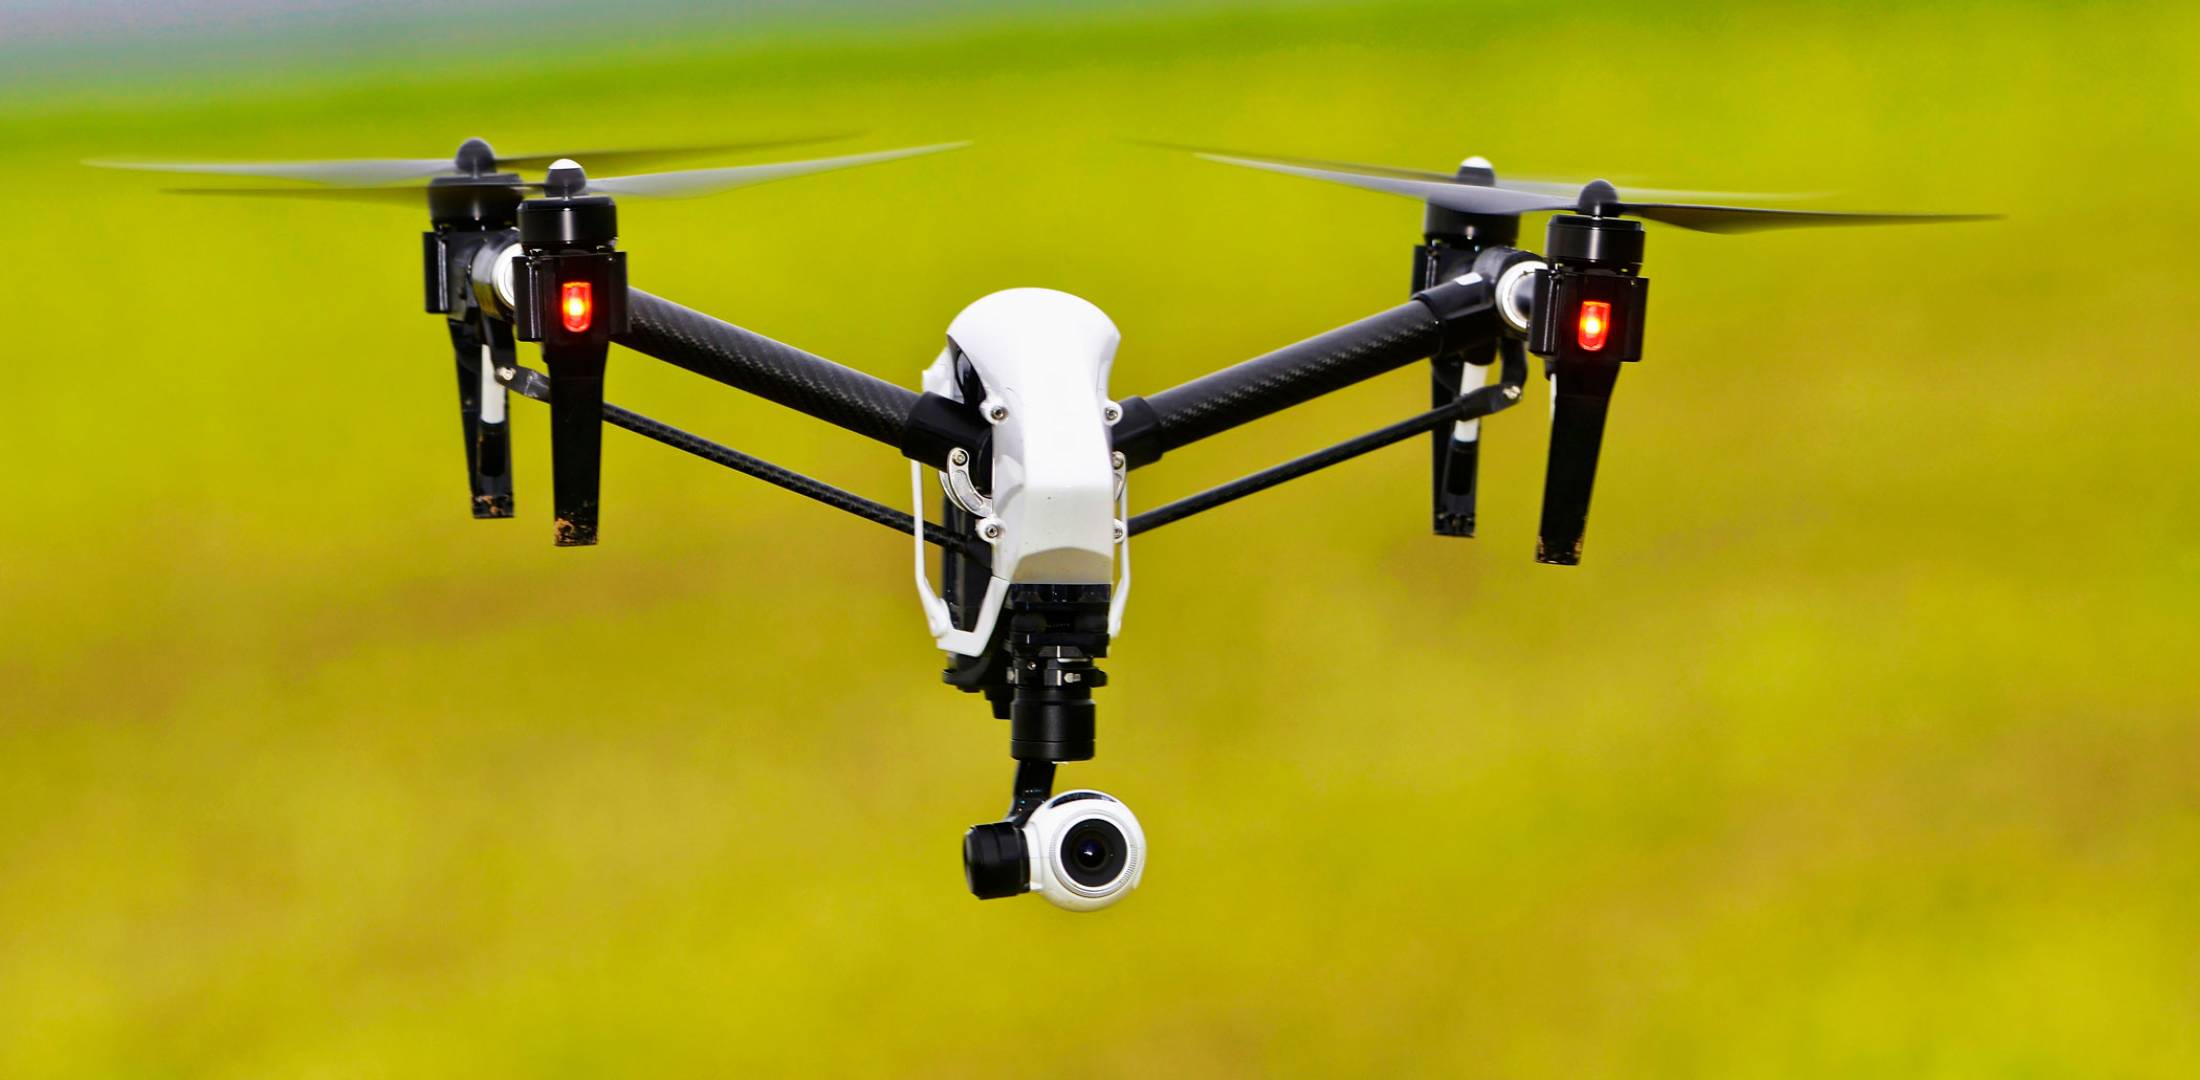 RTI Forensics, a forensics investigation firm audited by Wyvern, uses the DJI Inspire 1 quadcopter in its operations.